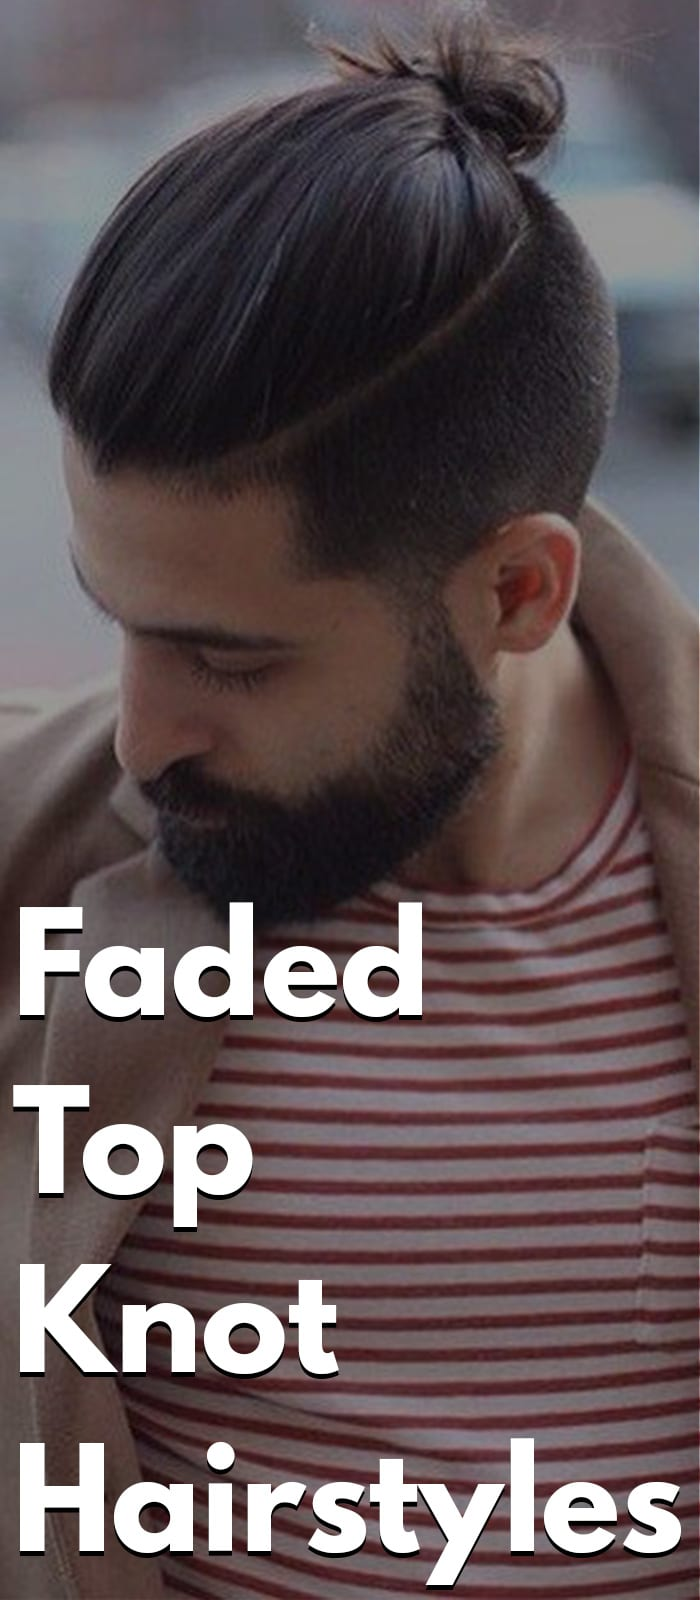 Faded Top Knot Hairstyles